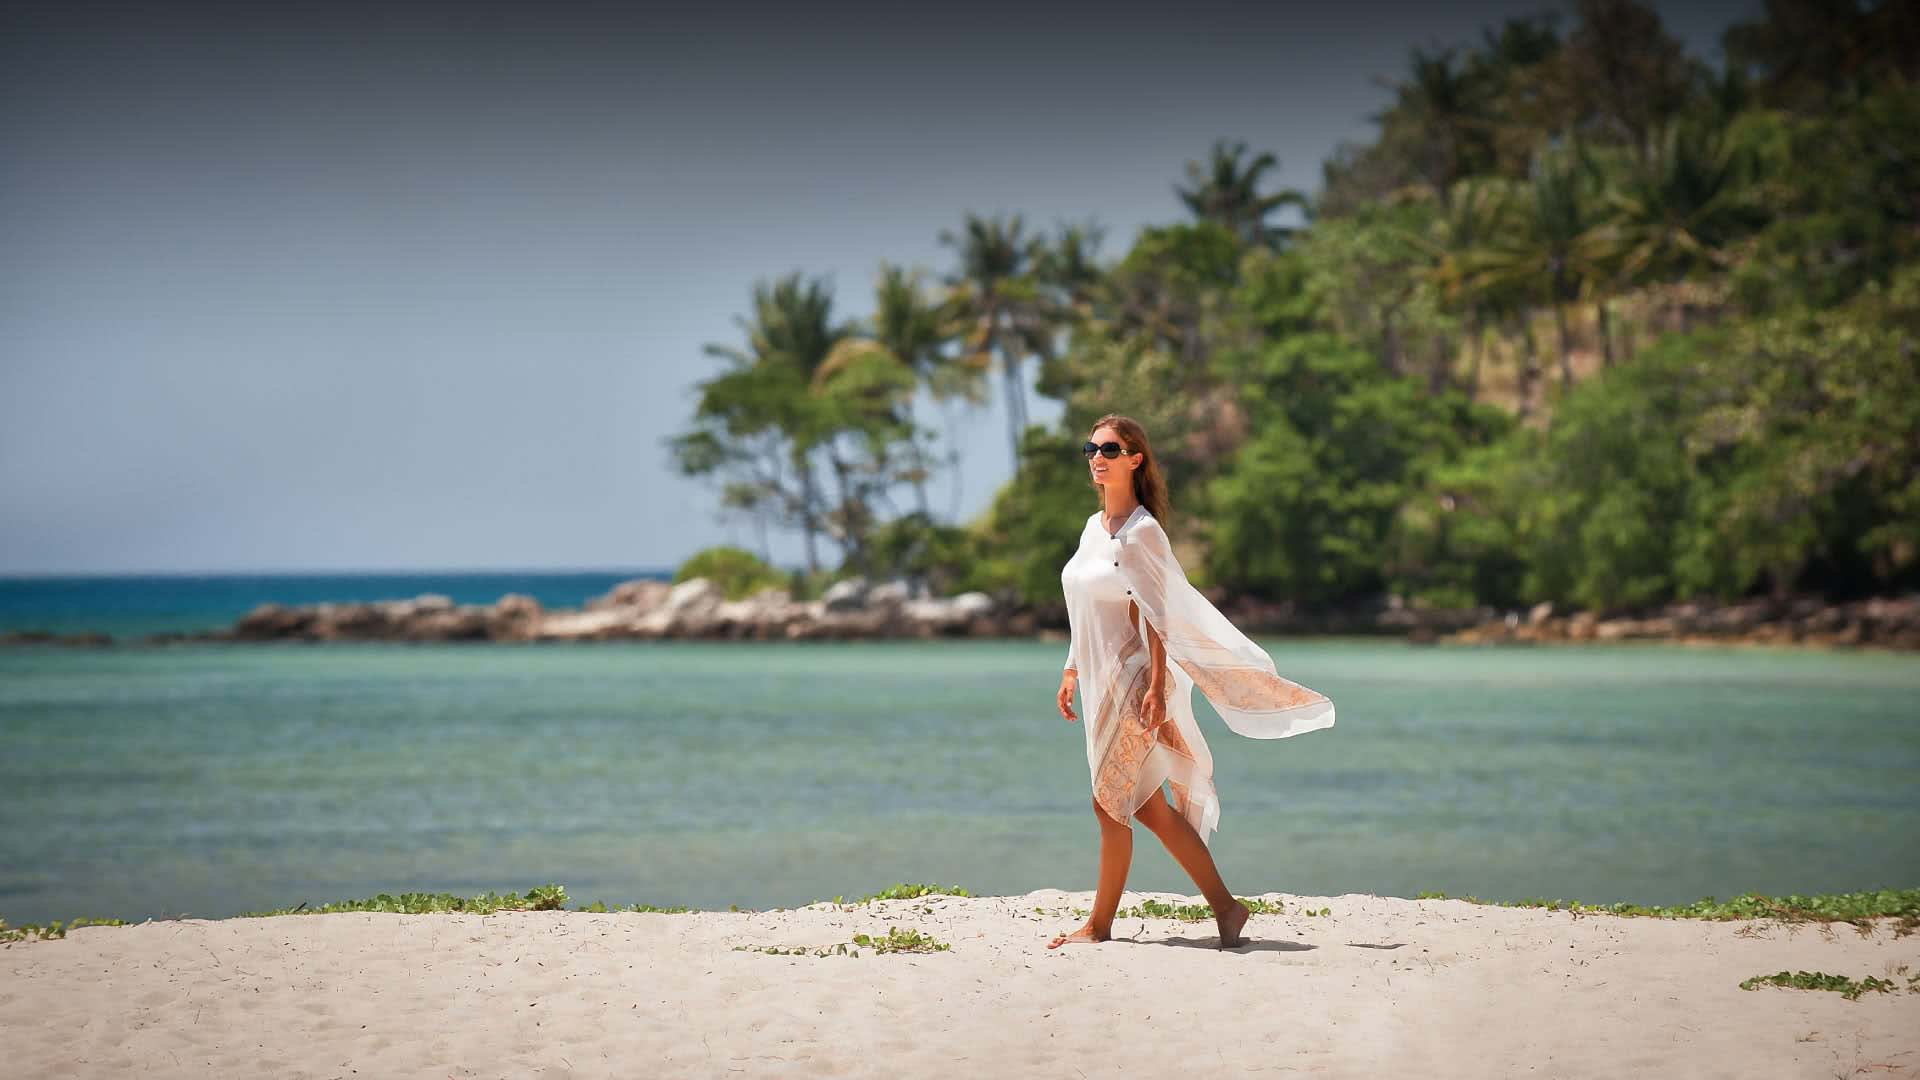 https://assets.anantara.com/image/upload/q_auto,f_auto/media/minor/anantara/images/anantara-layan-phuket-resort/the-resort/desktop-banner/layan_headerbanner_fallback_1920x1080.jpg